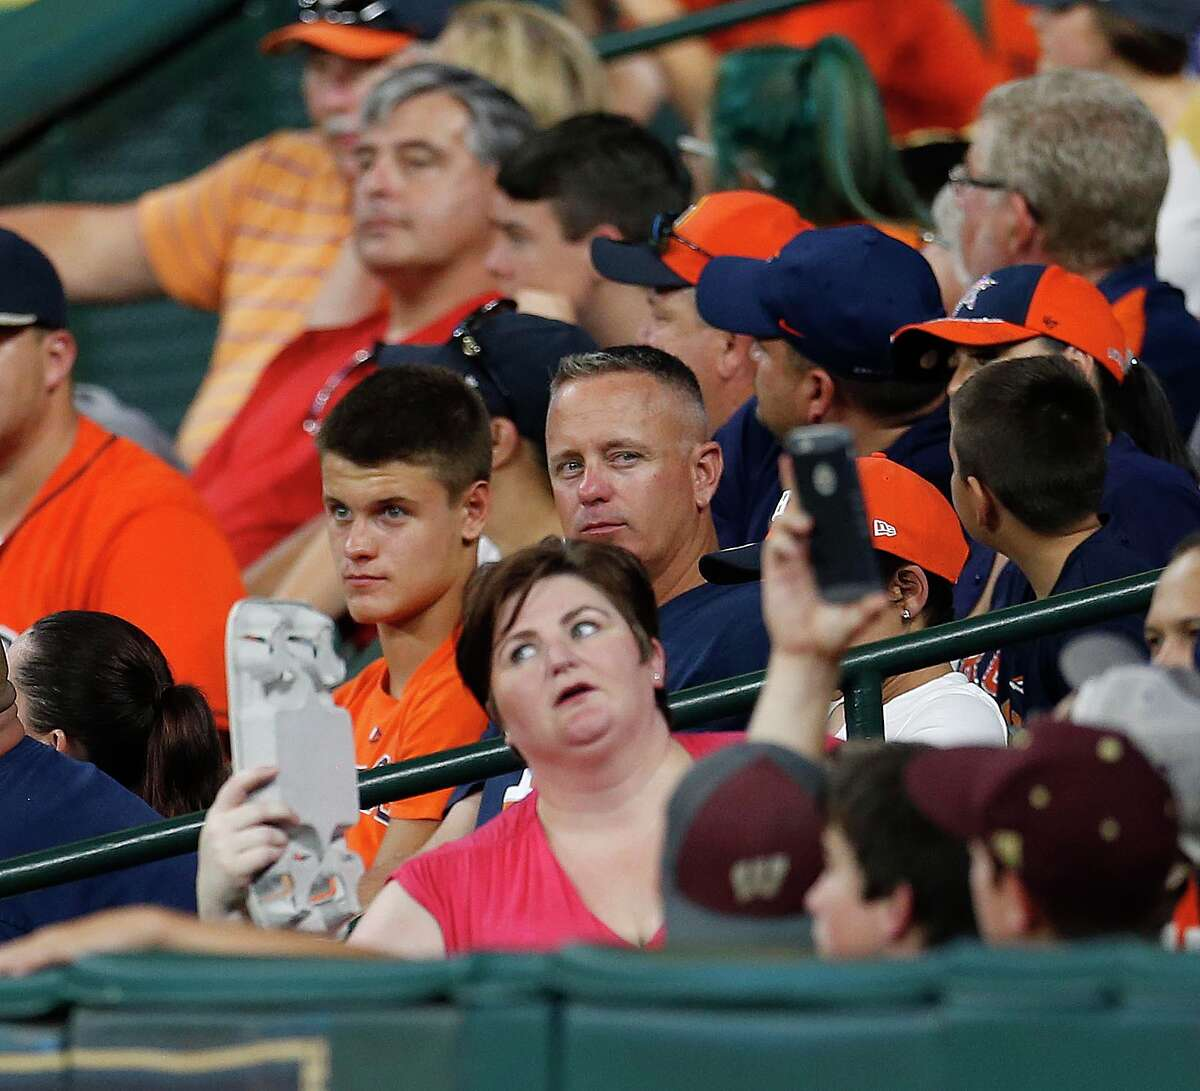 A toasty night in Minute Maid Park due to a malfunctioning of the air conditioning system leads one woman to fan herself in the seventh,